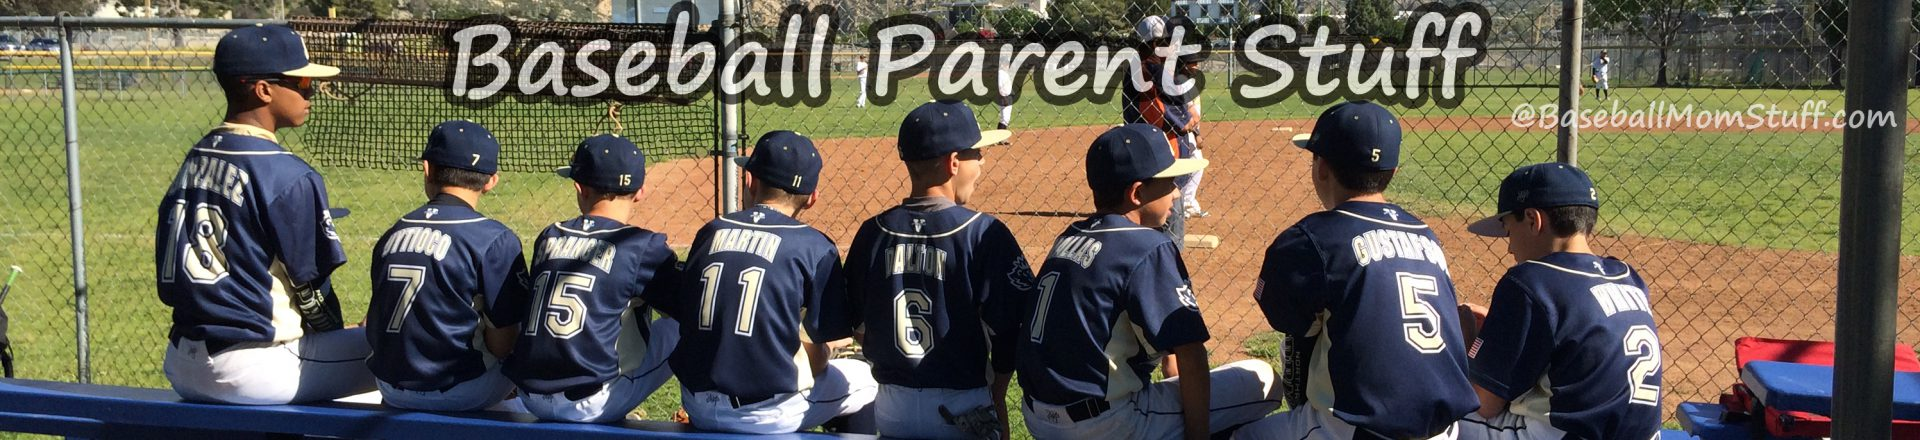 Baseball Parenting Can Affect Your Relationship